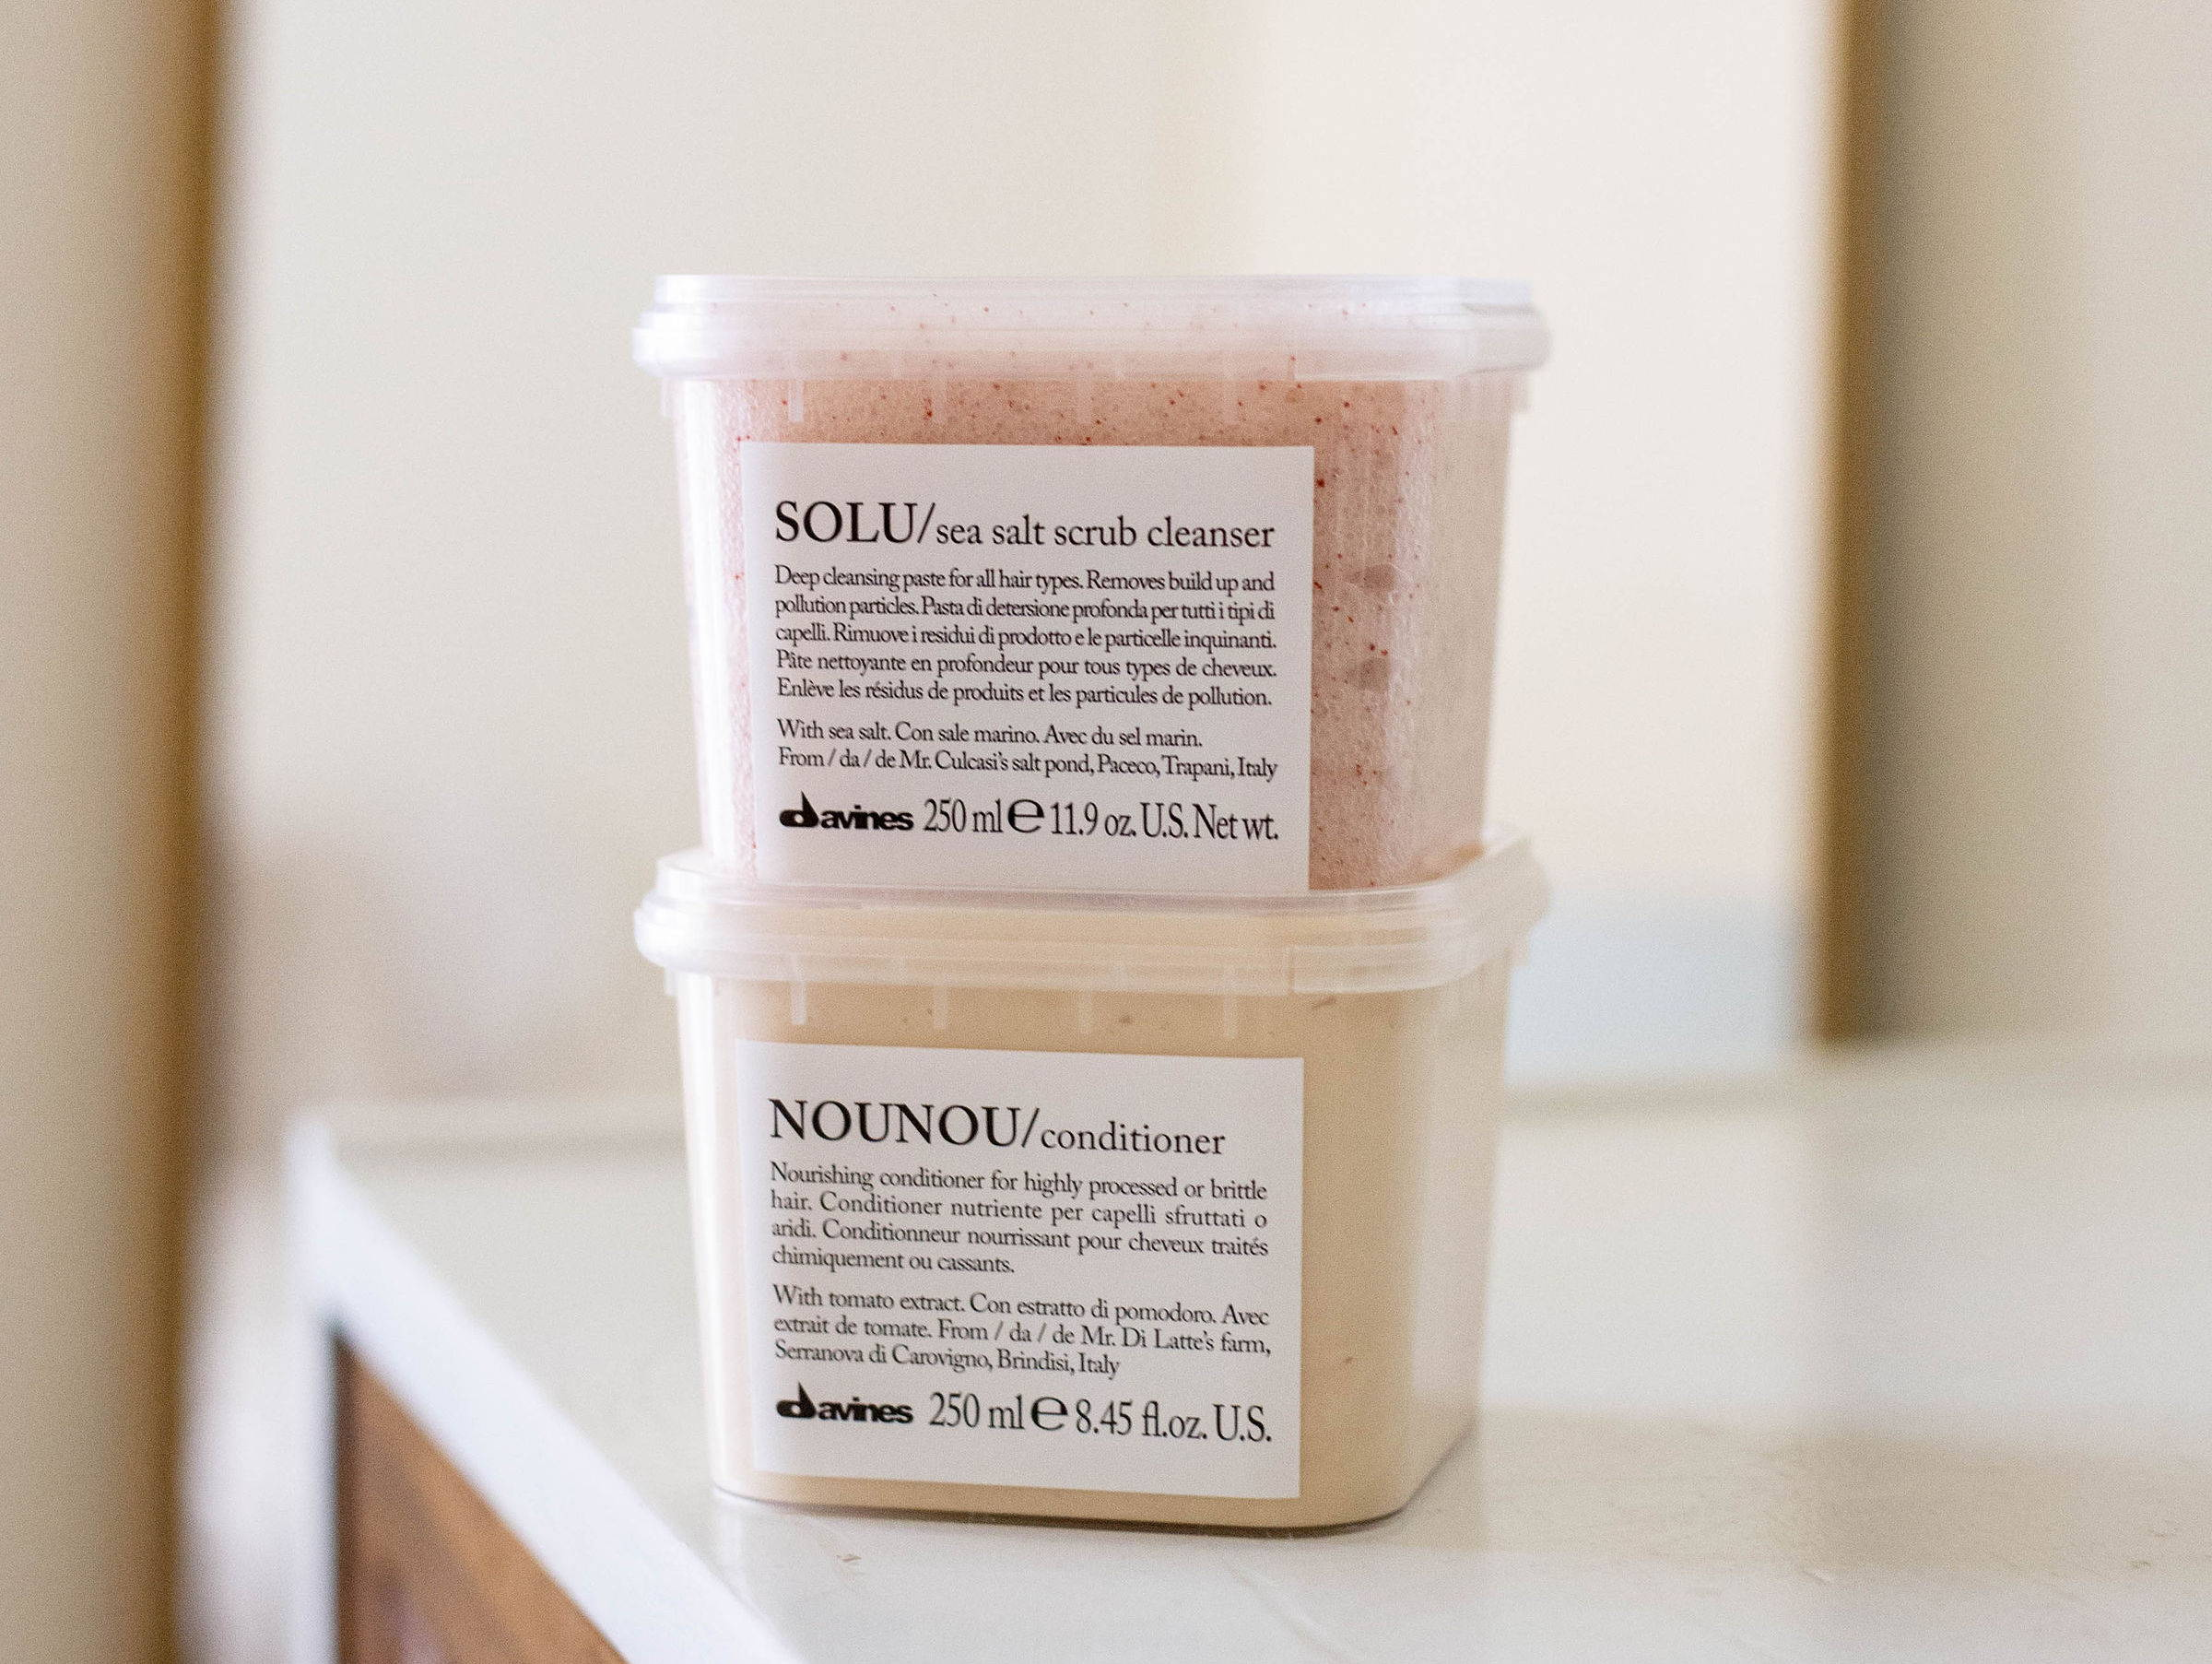 SOLU Sea Salt Scrub CLeanser Davines